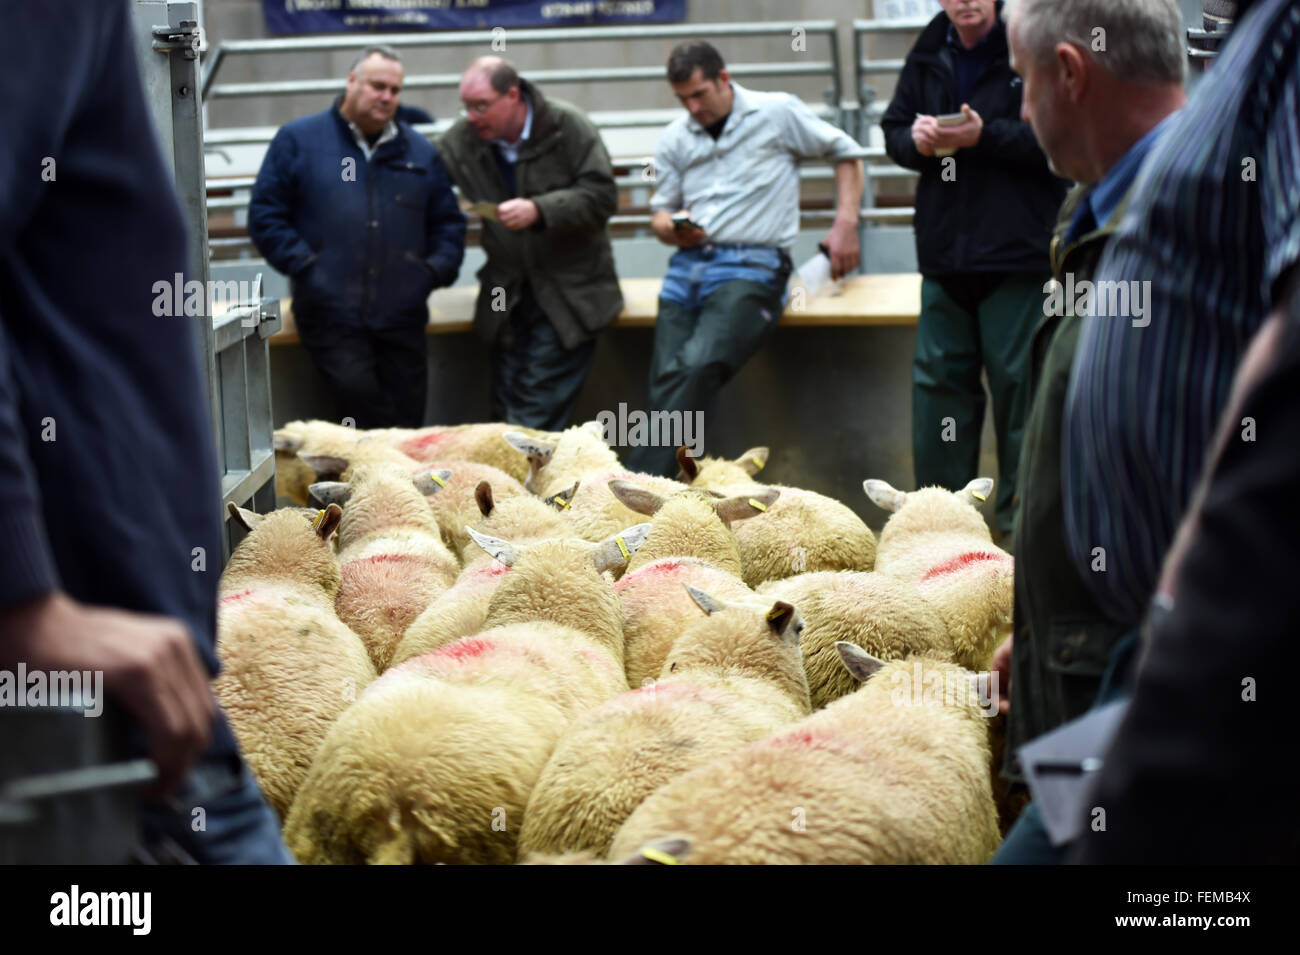 Sheep Auction, buyers inspect the stock, and use mobile phones to share the bid, Kendal UK - Stock Image